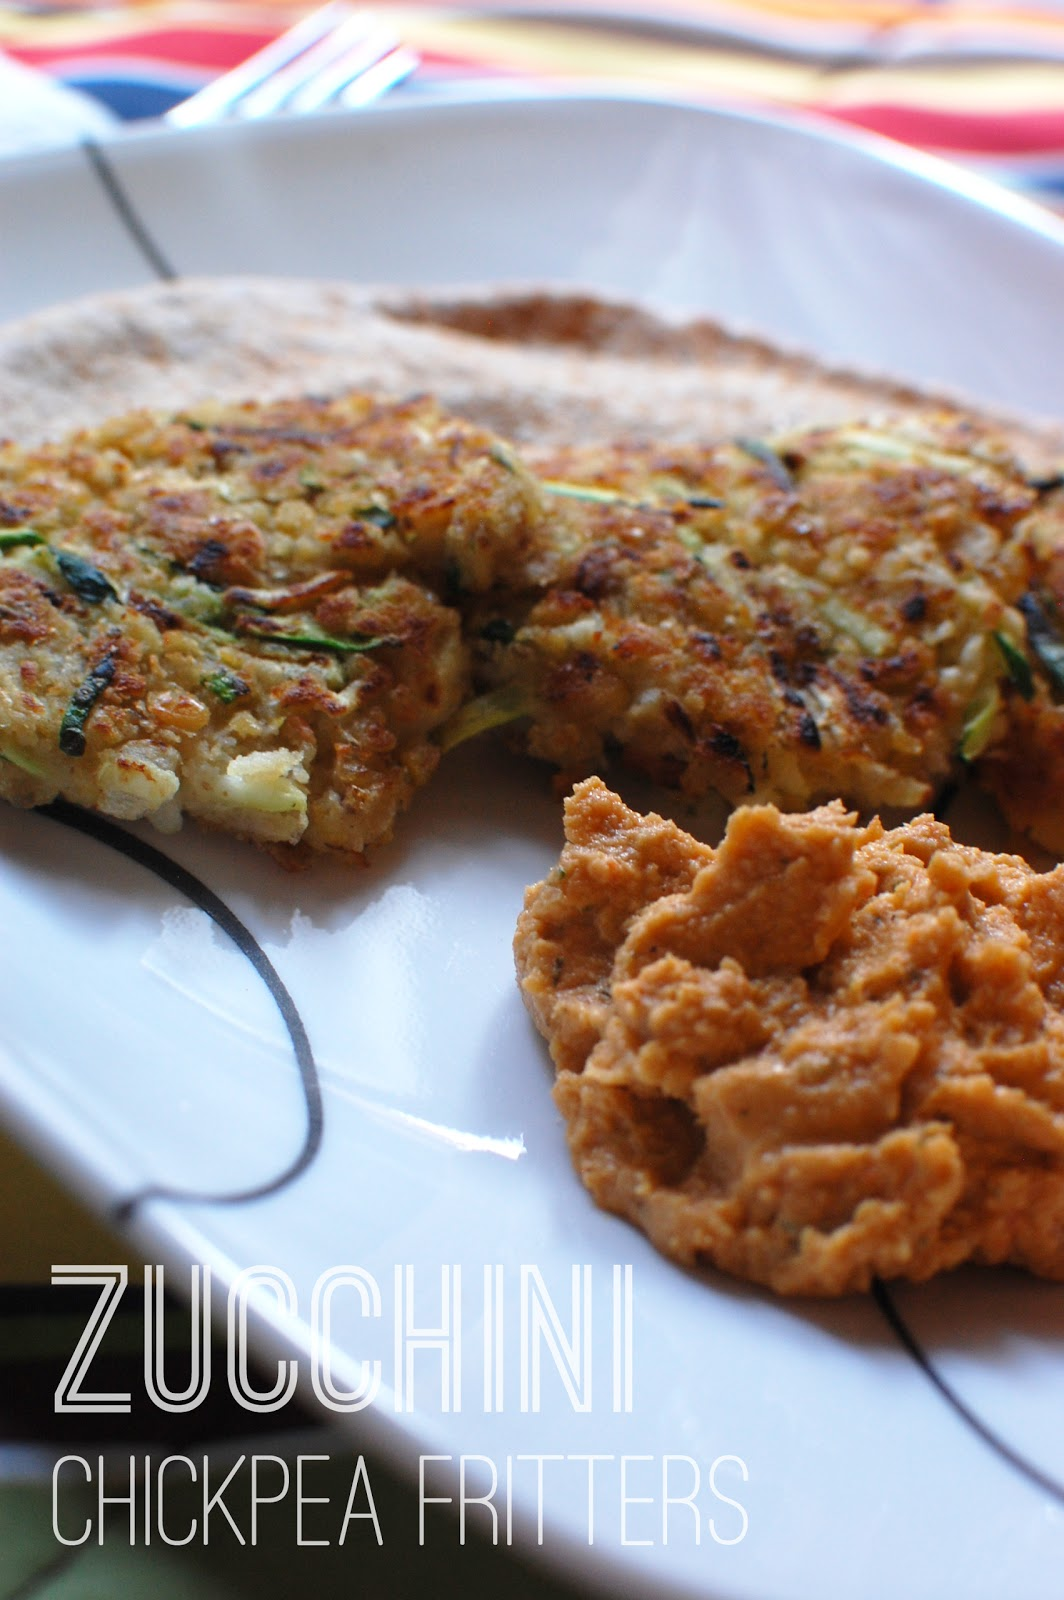 VeganFling: Zucchini Chickpea Fritters